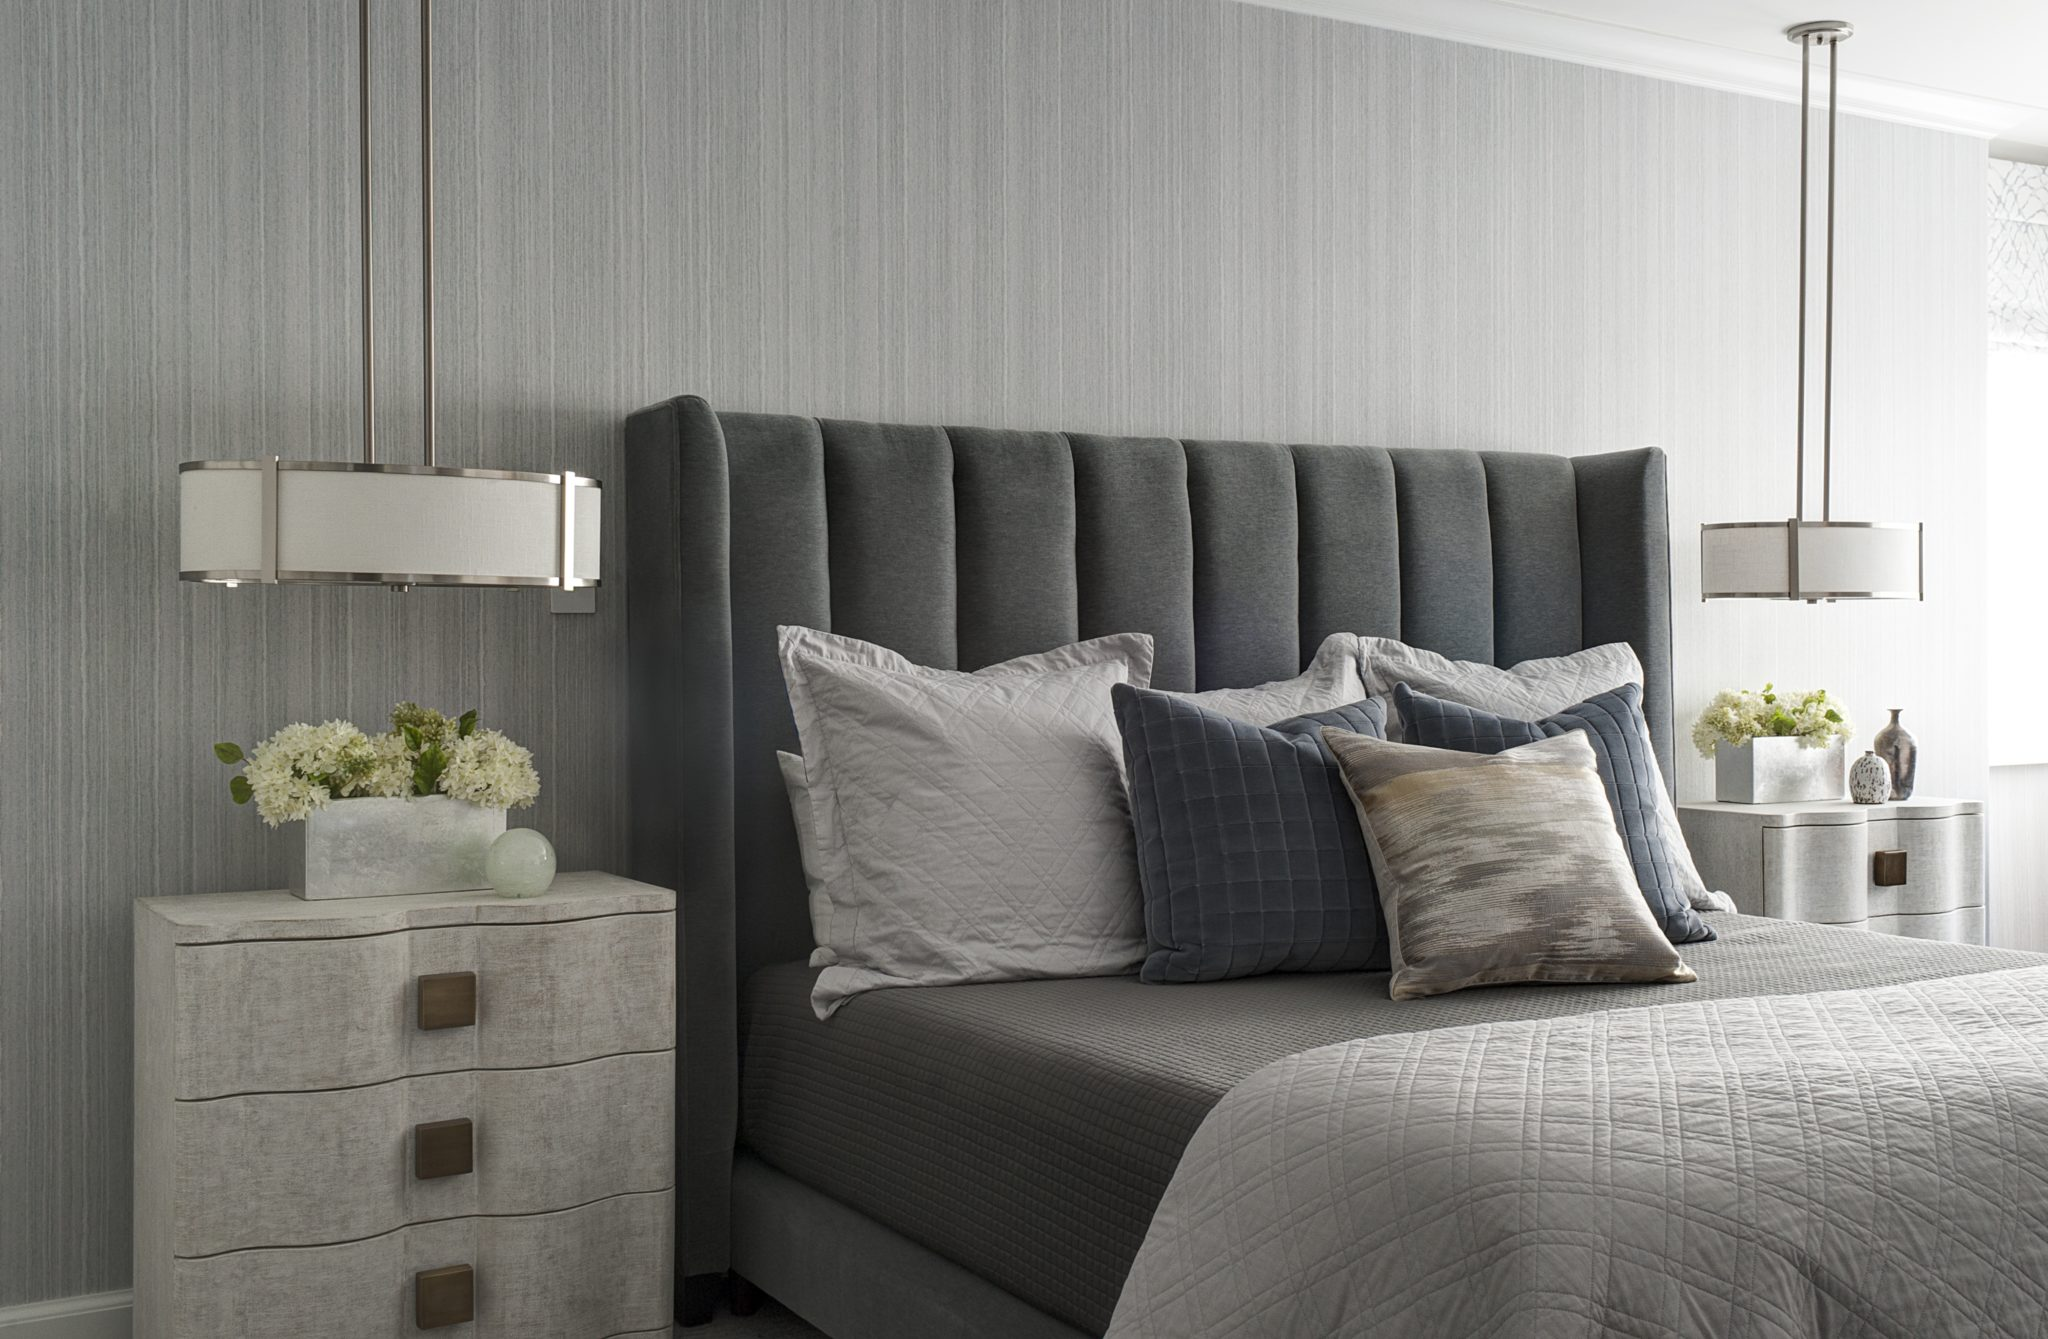 Soothing bedtime: Velvet, Belgian linen, and hand-painted wallpaper. by John Willey | Willey Design LLC